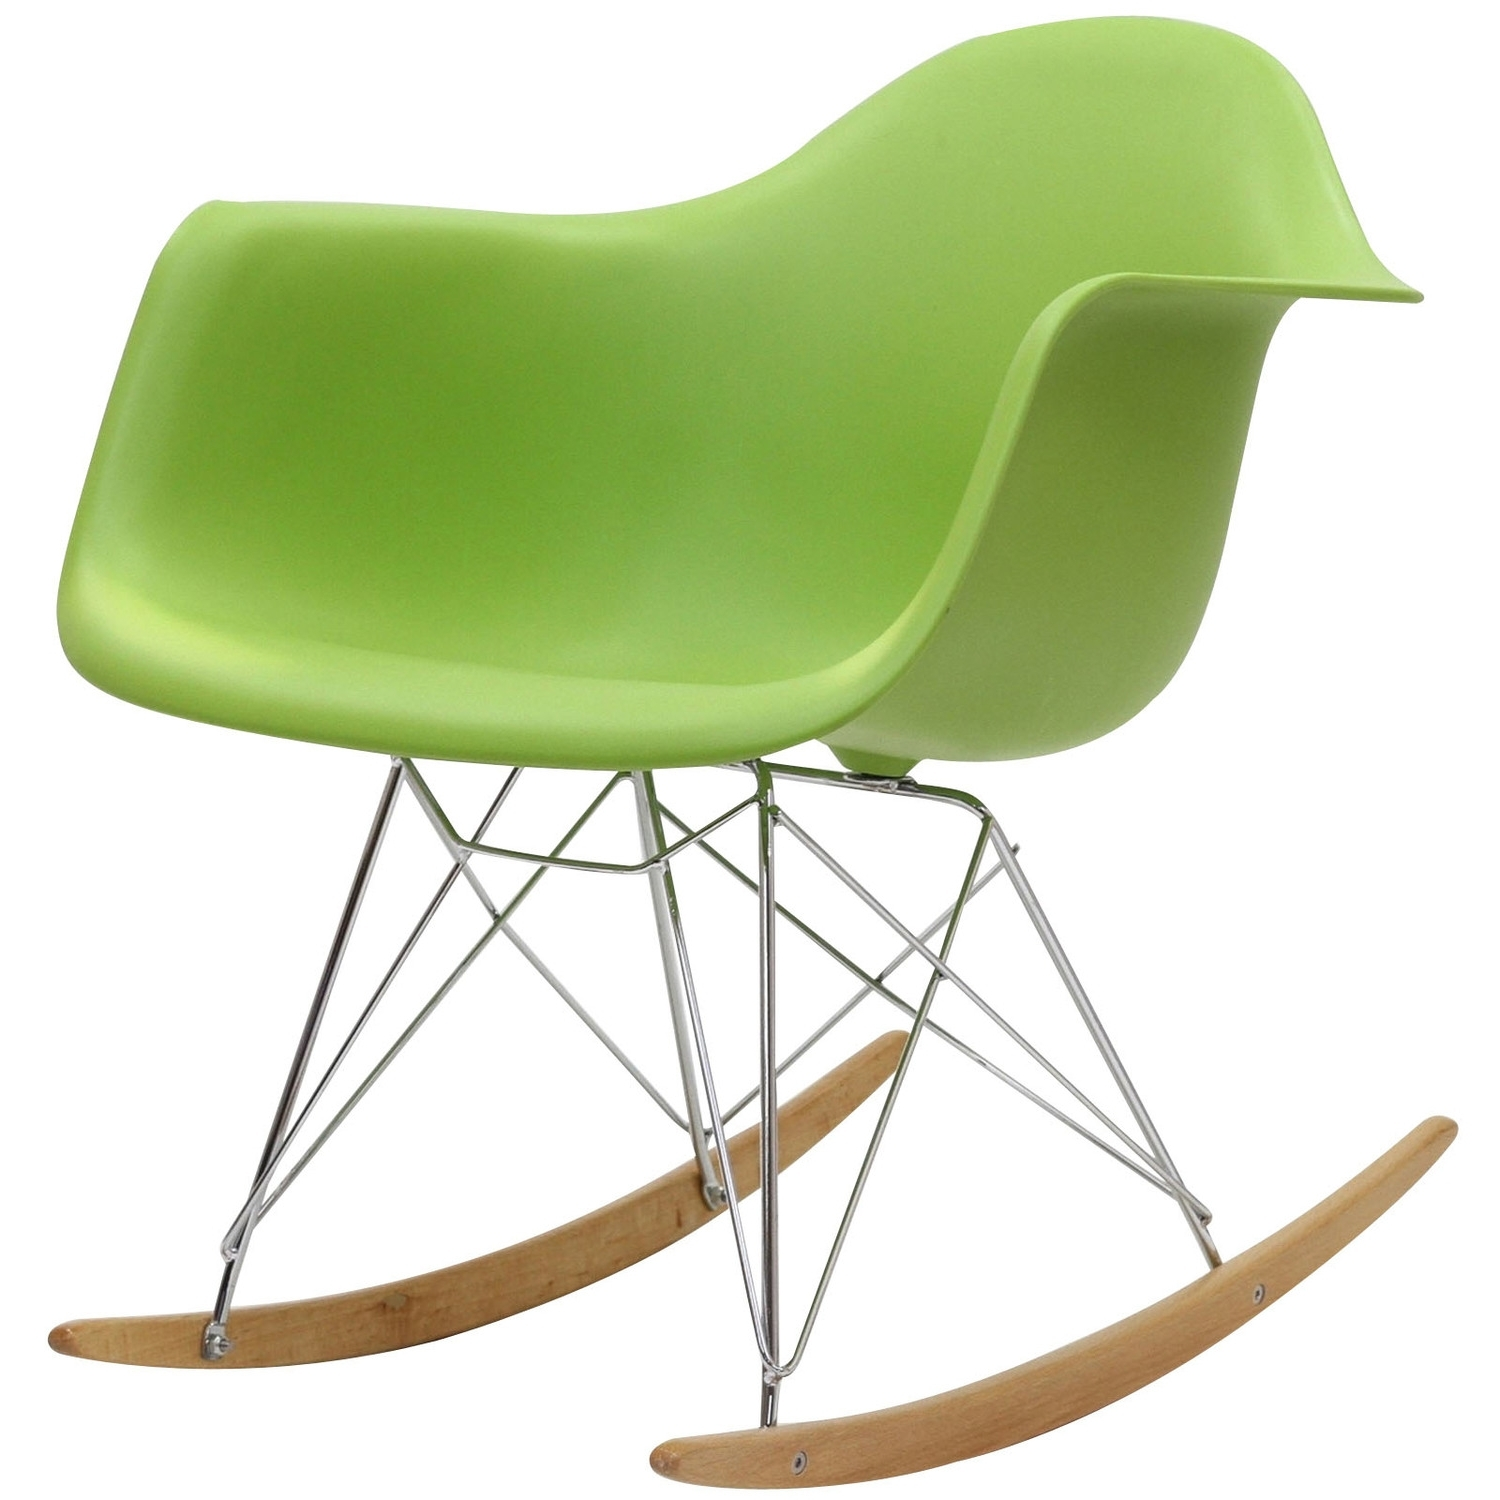 2018 Green Chaises Pertaining To Rocker Green Chaise Eei 147 Modway Furniture Chaises, Lounge (View 1 of 15)